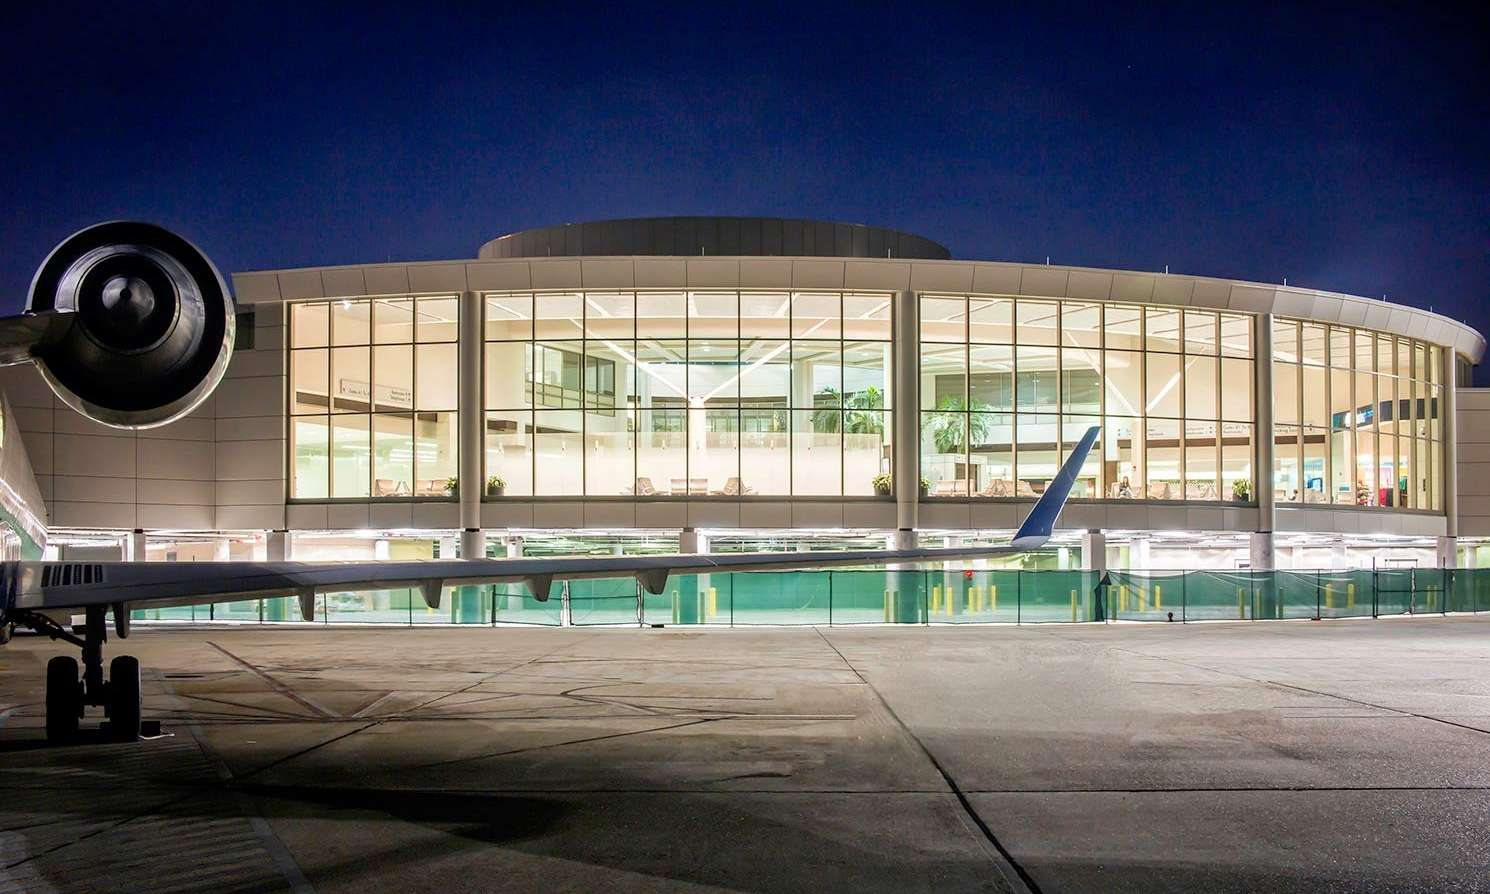 Exterior image of the Baton Rouge Metropolitan Airport Terminal Expansion from the runway apron